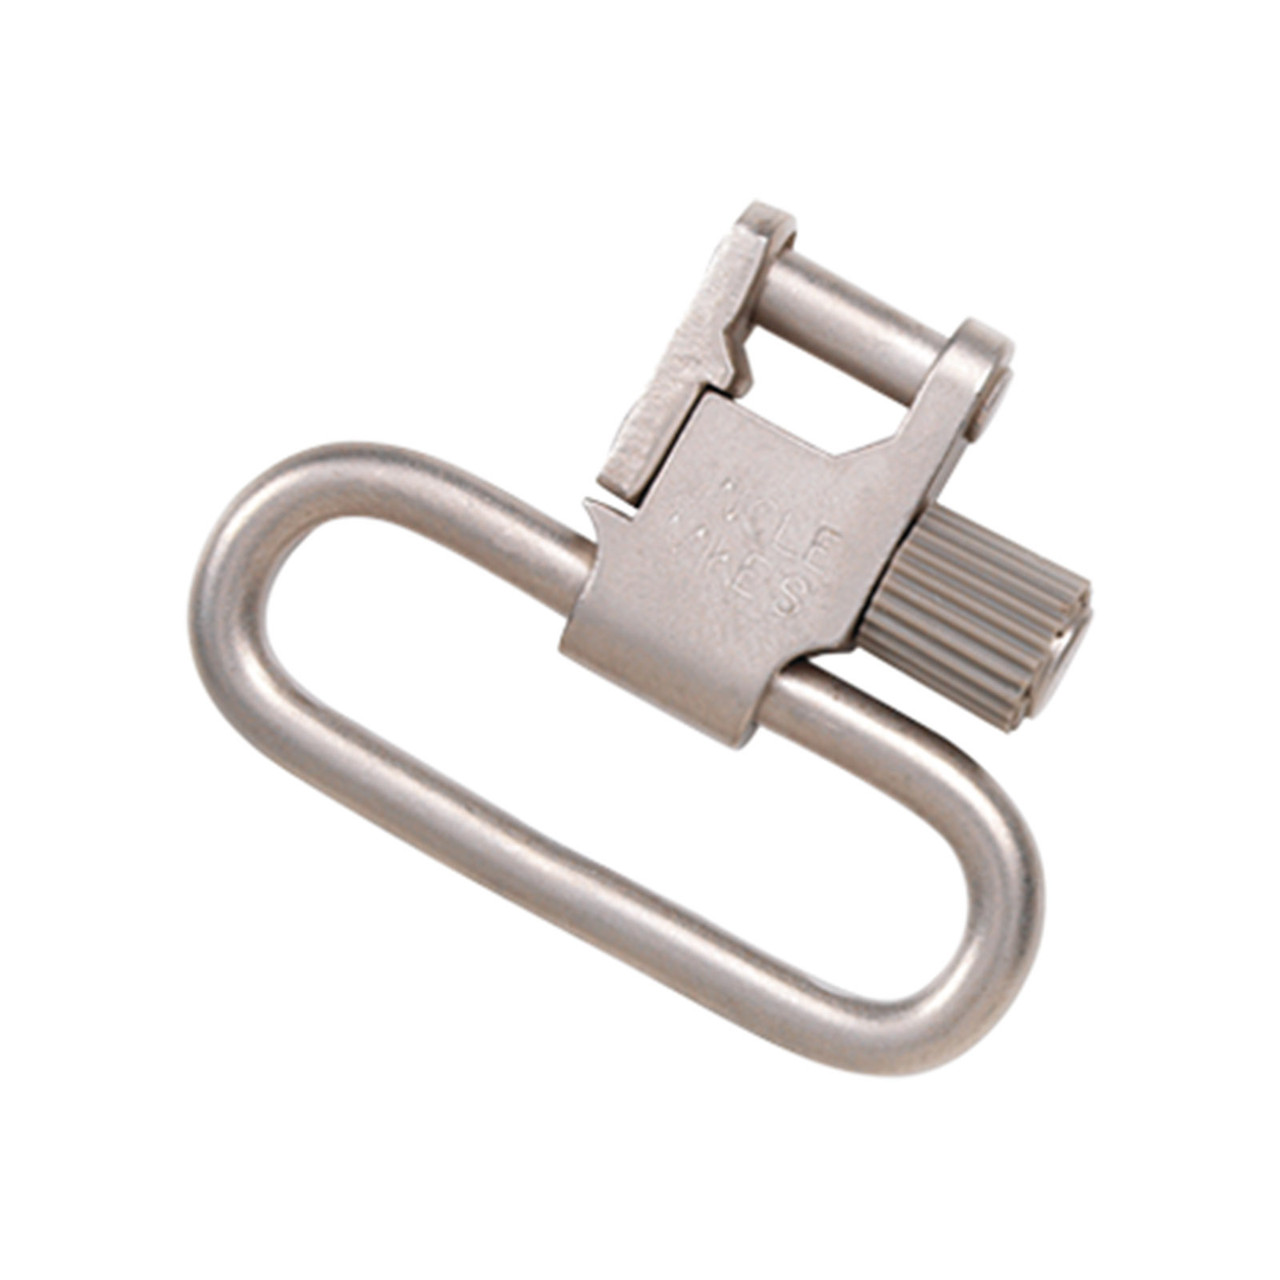 Uncle Mike's Quick Detachable Super Swivels with//out Tri-Lock